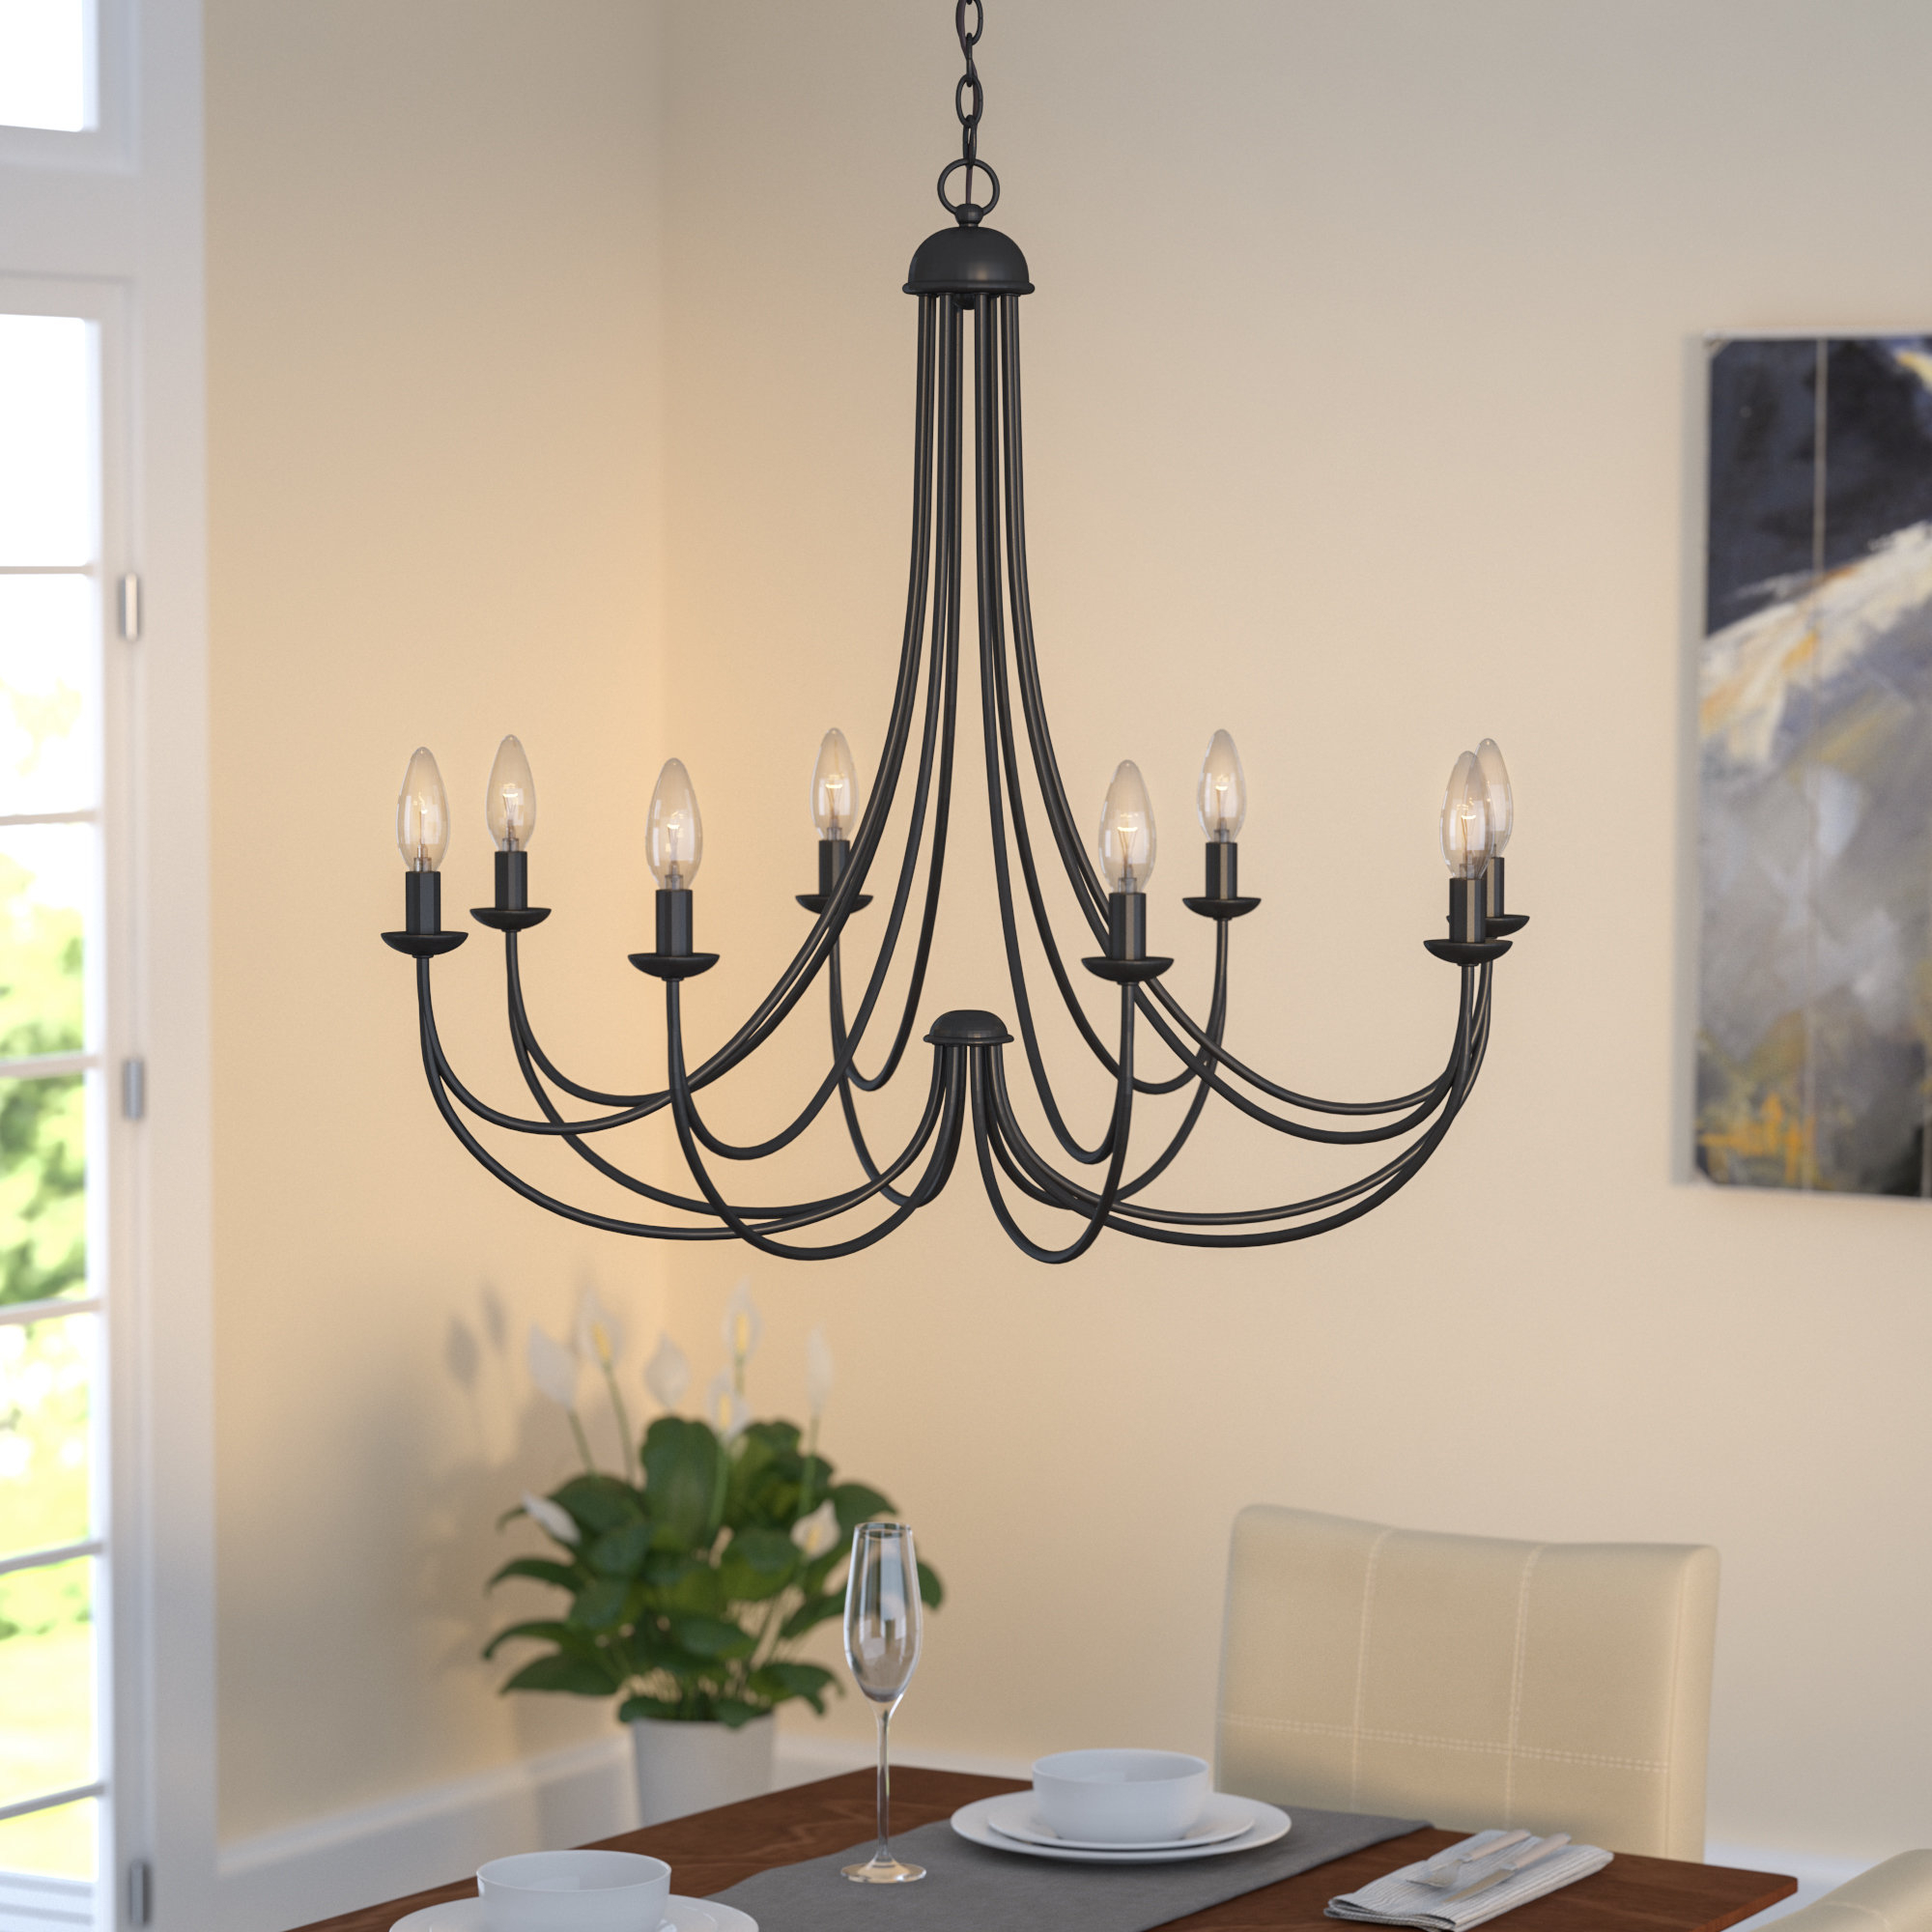 Emilia 8 Light Candle Style Chandelier In Most Up To Date Watford 9 Light Candle Style Chandeliers (View 14 of 25)